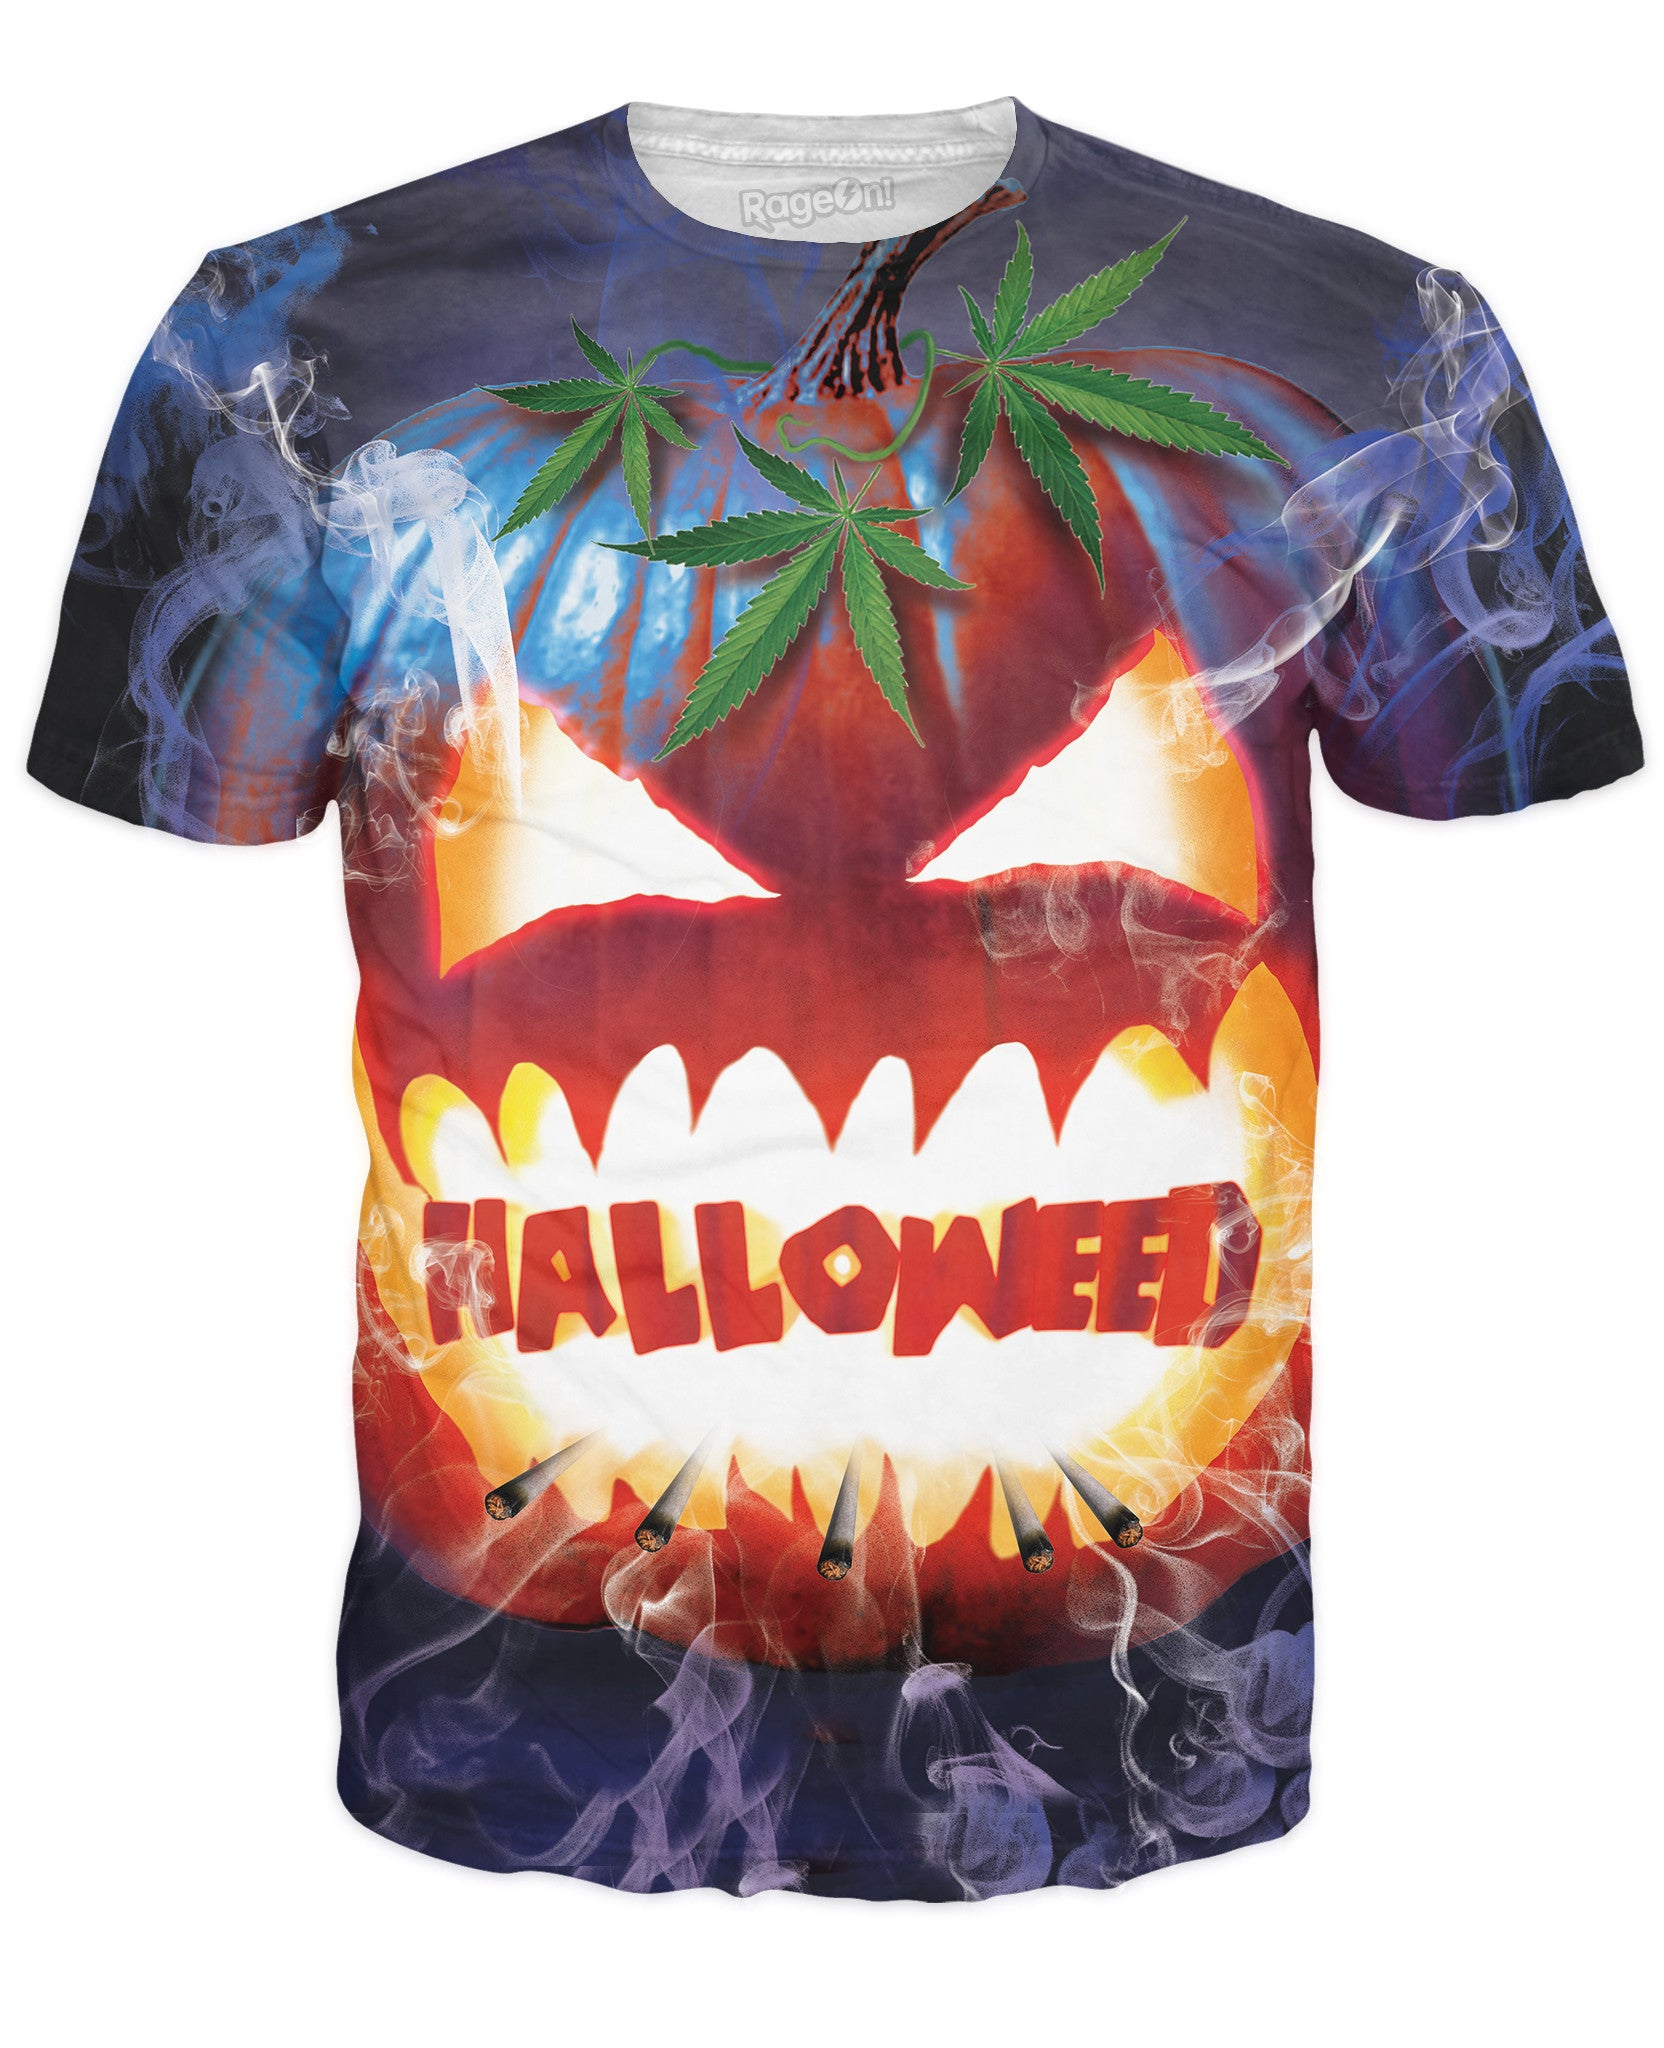 Halloweed T-Shirt